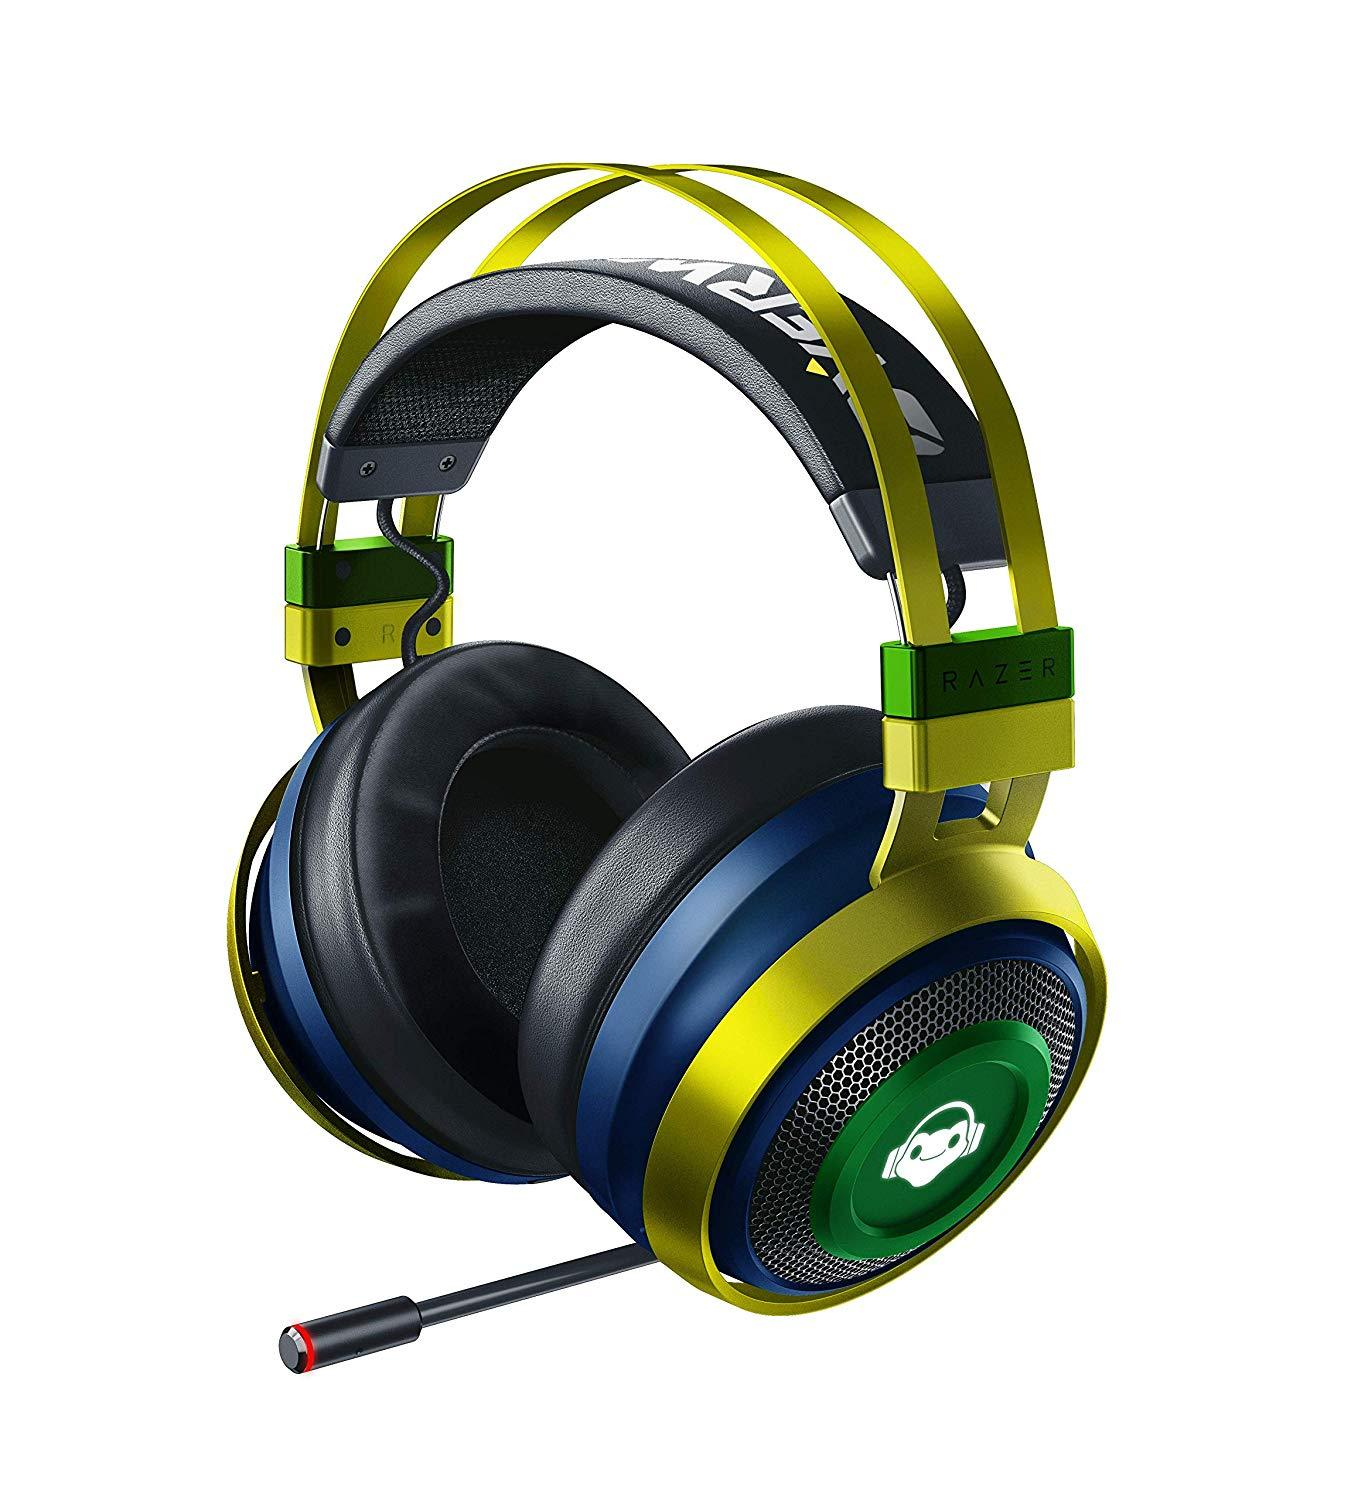 Razer Nari Ultimate Overwatch Edition - Lucio